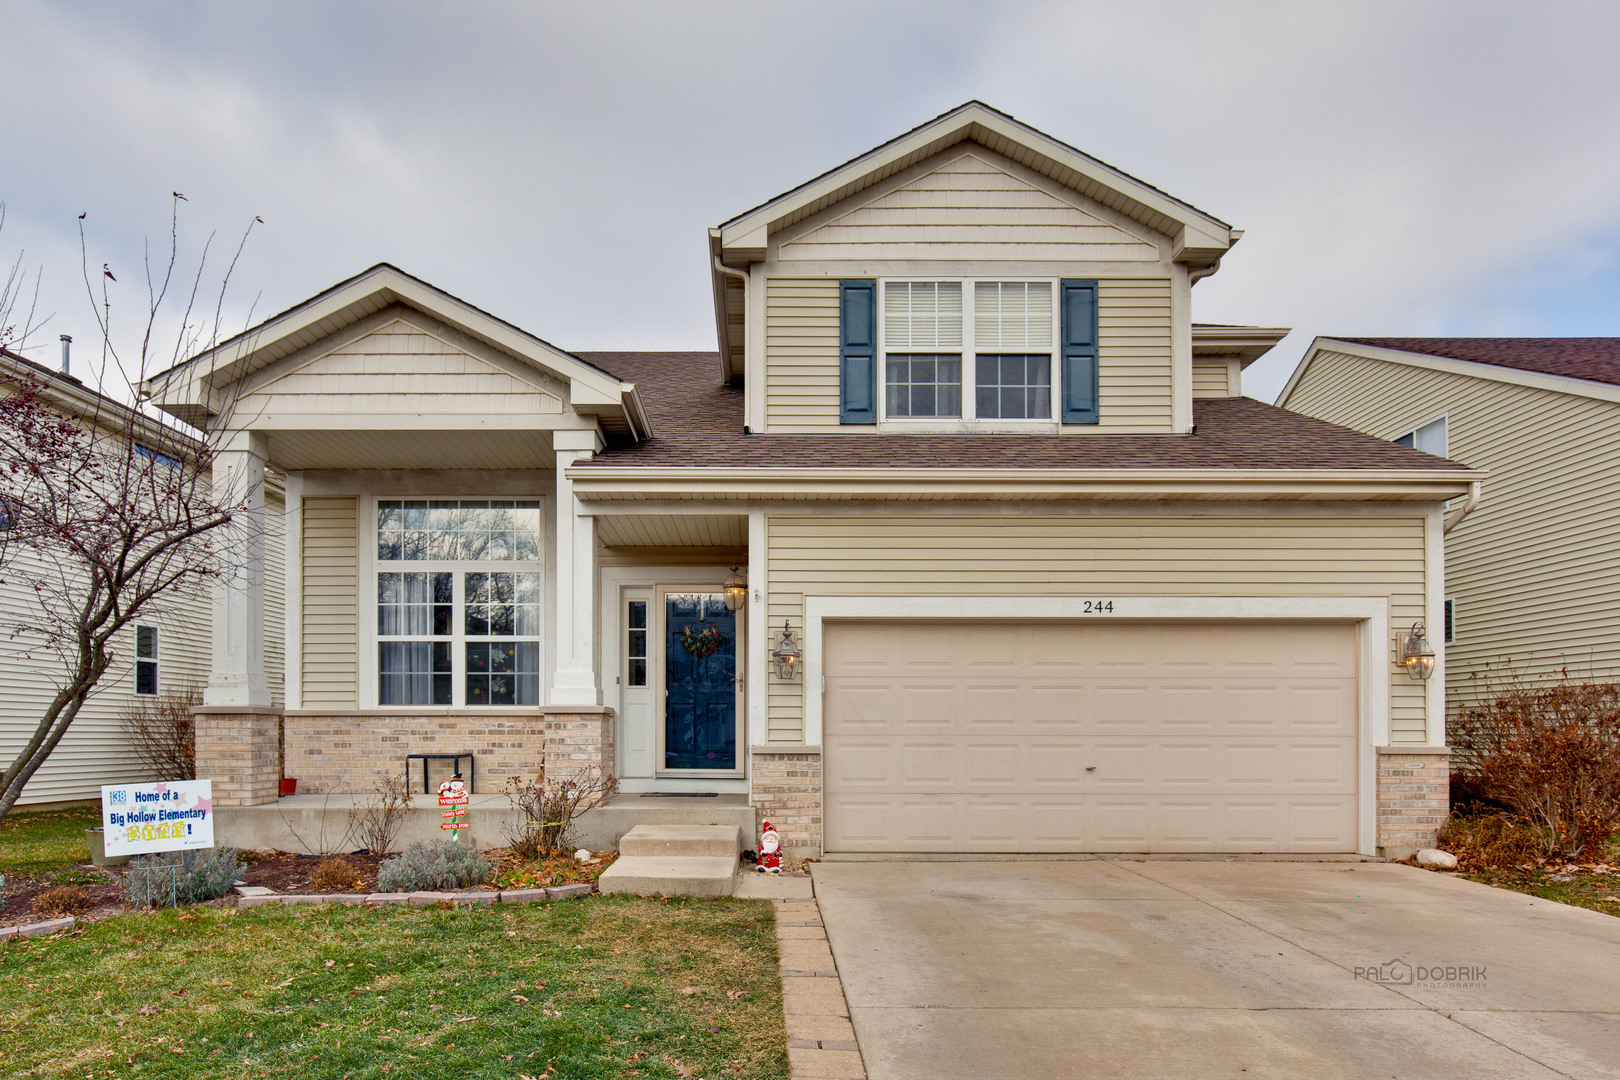 244 South Cornerstone Drive, Volo, Illinois 60020